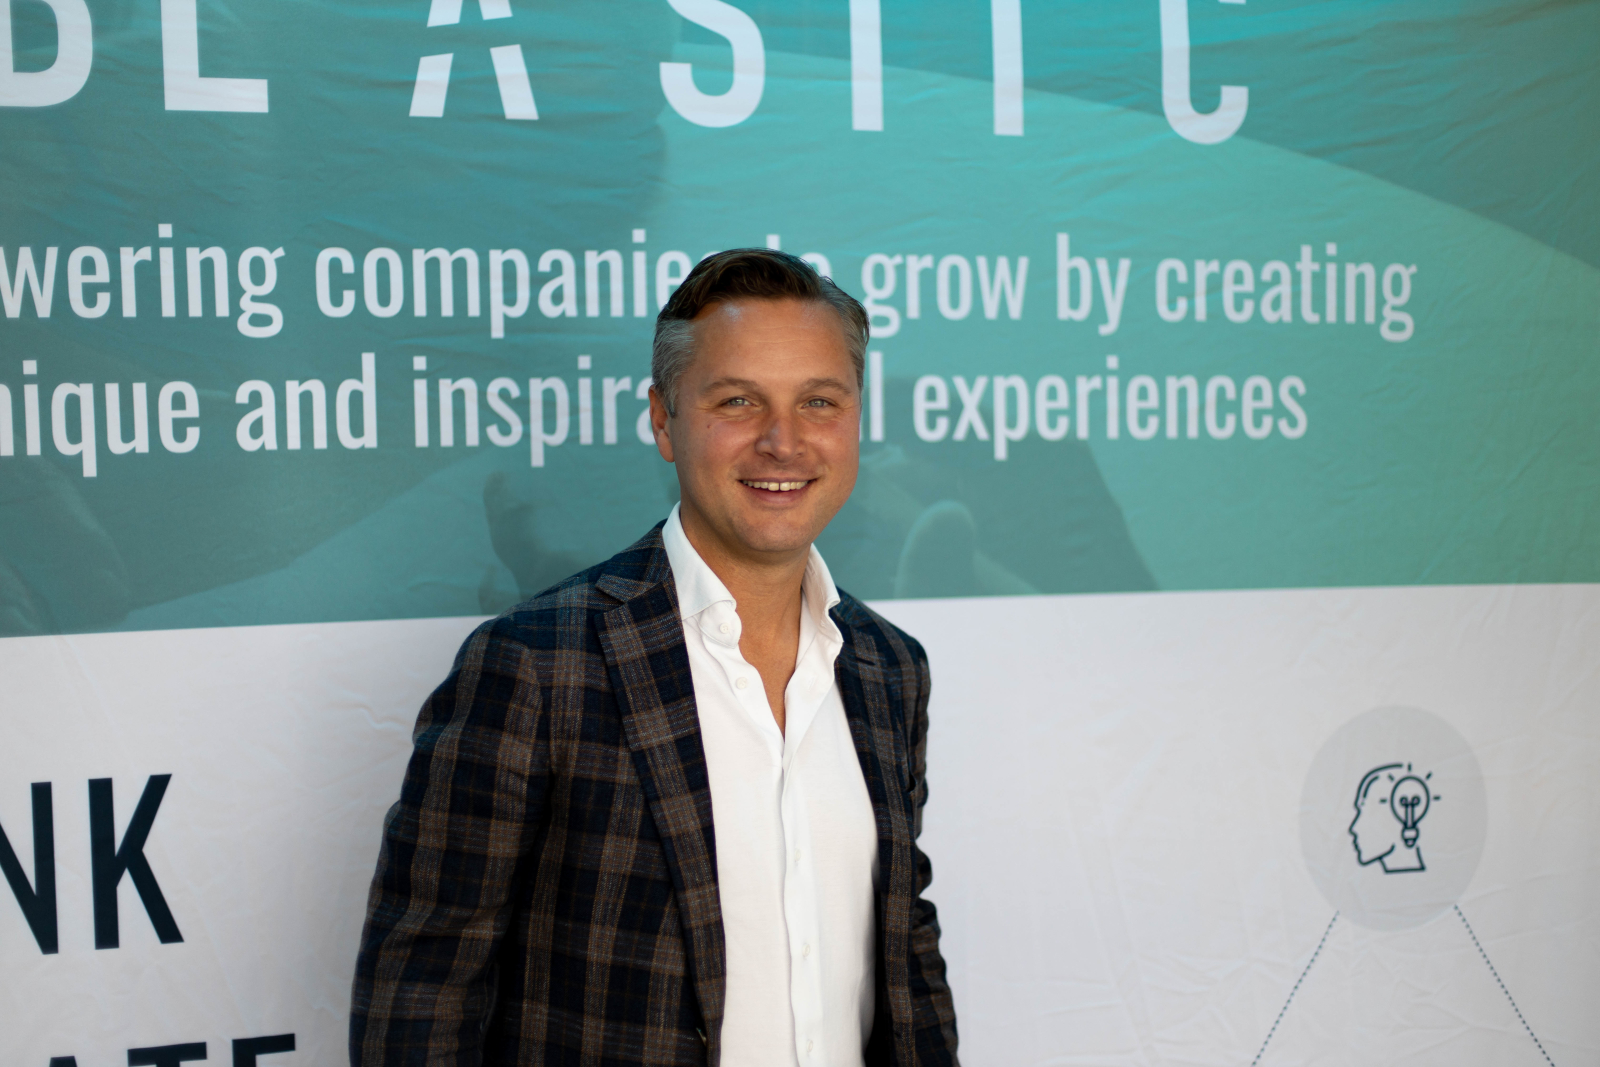 Erik Mastenbroek Blastic business developer announcement